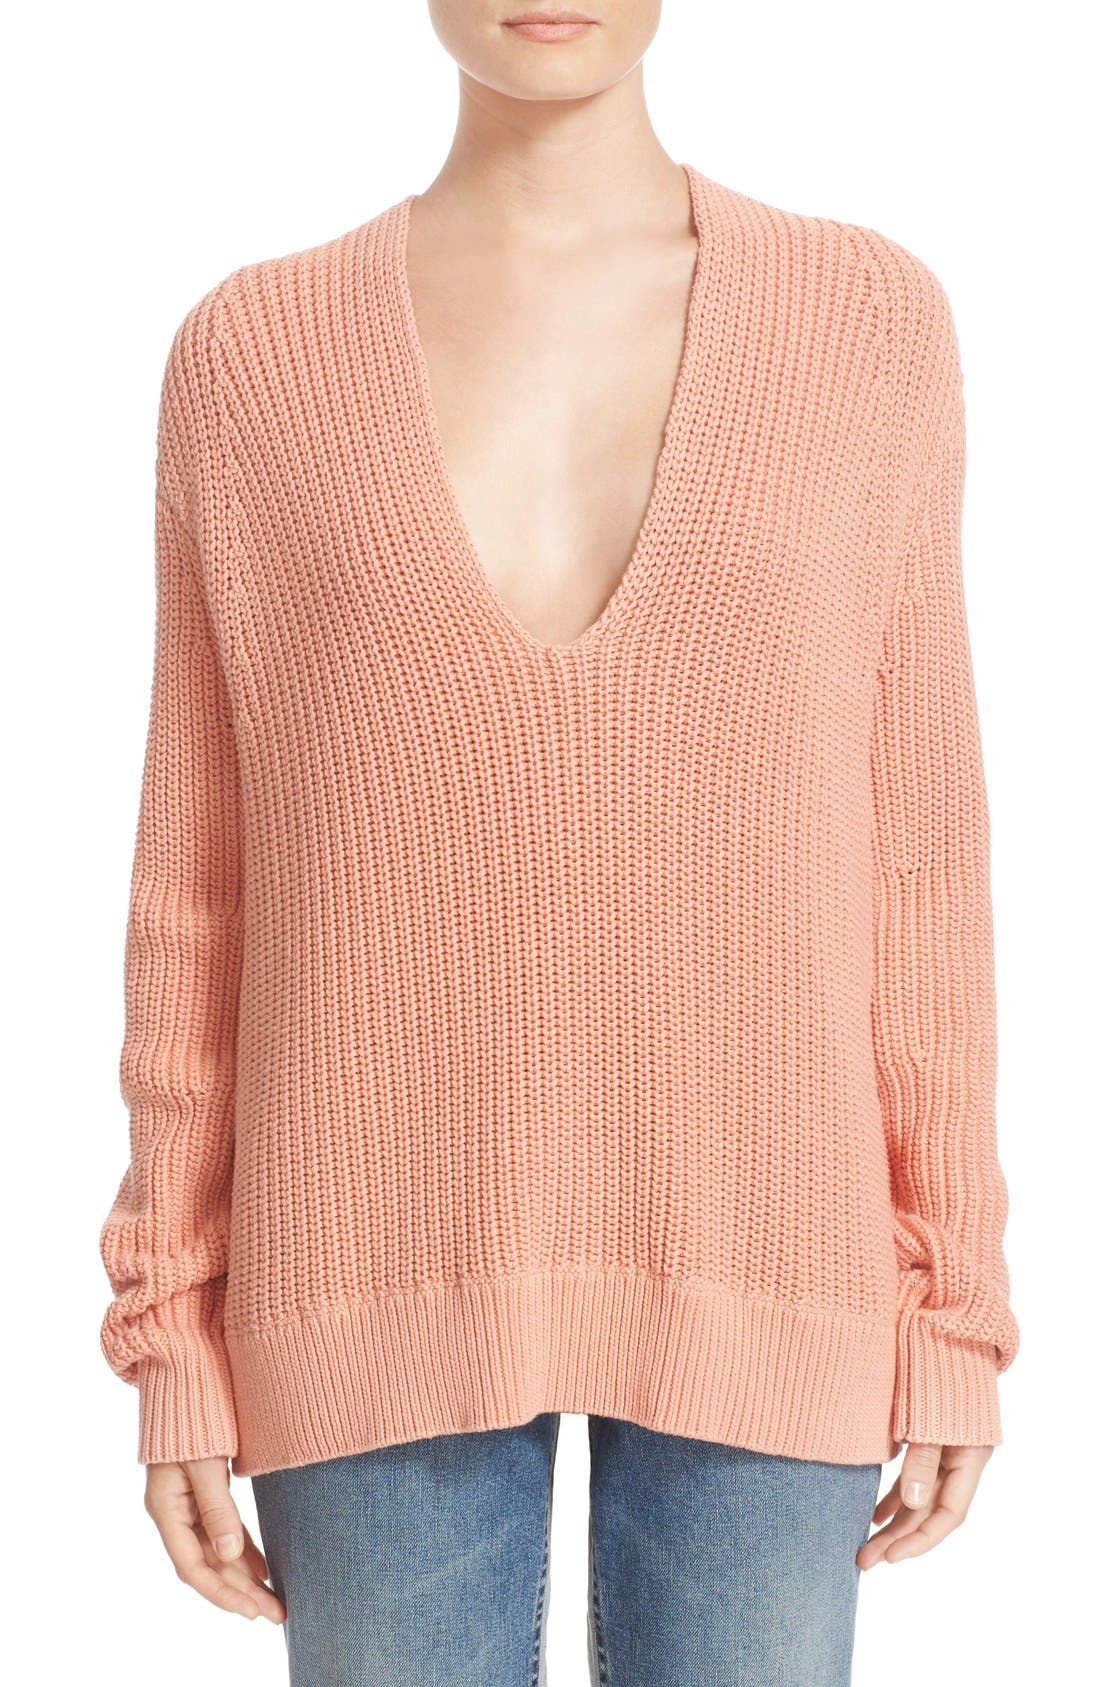 Main Image - T by Alexander Wang Knit Cotton Sweater